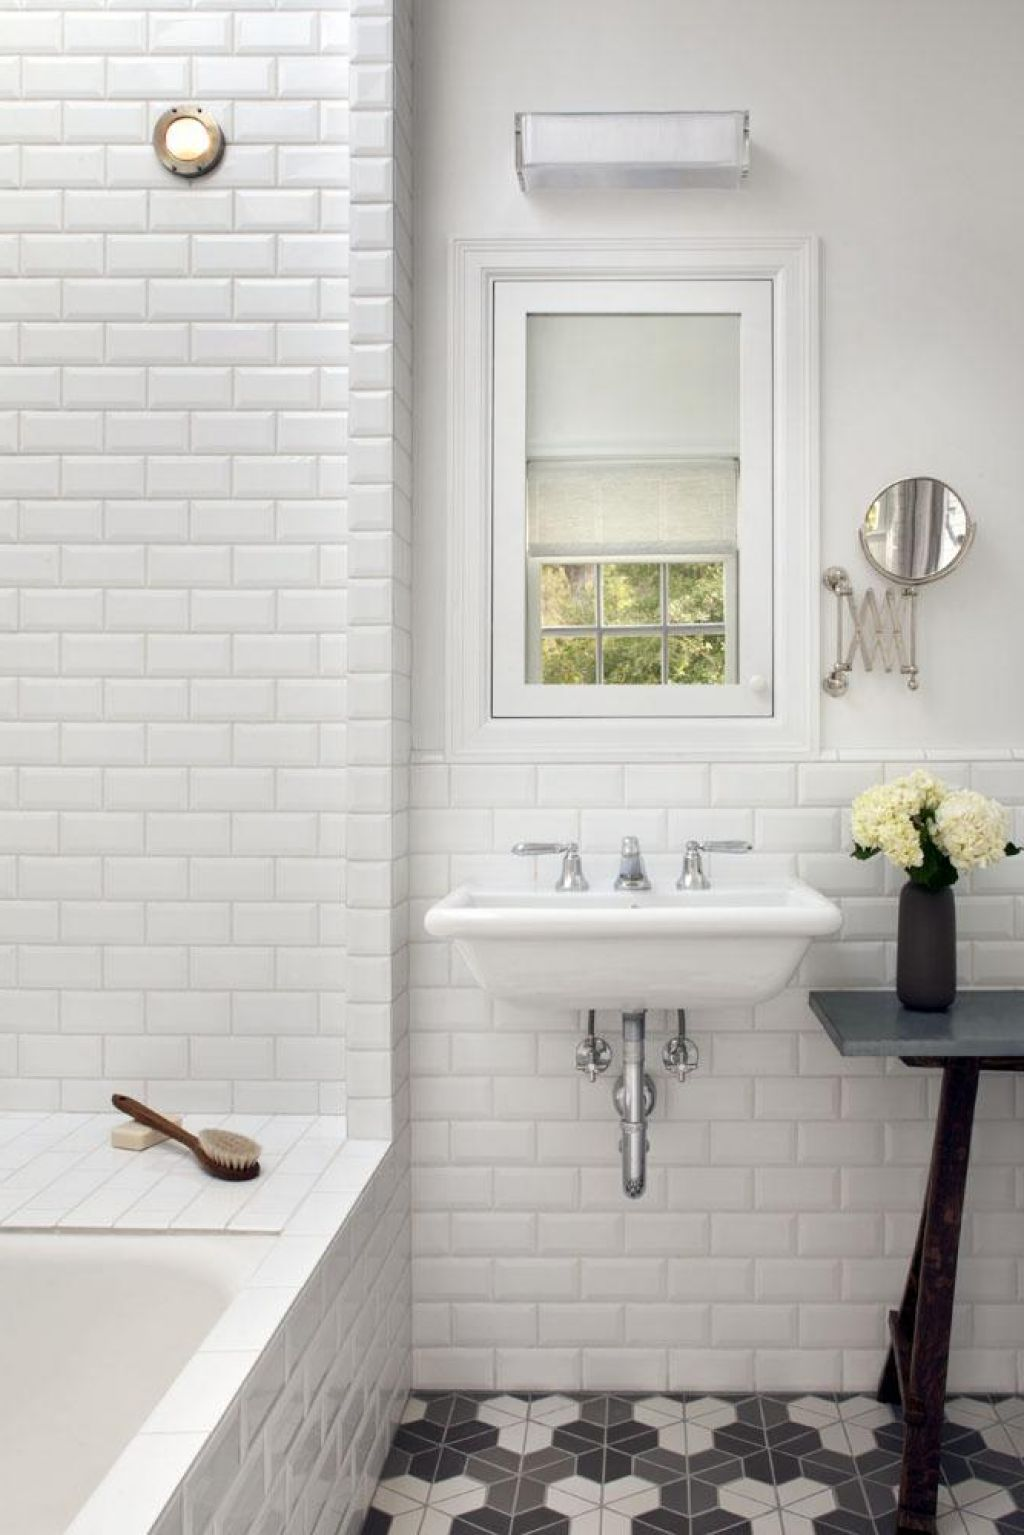 Subway tile bathroom ideas floor city wide kitchen and bath wash room pinterest subway Bathroom tiles ideas nz